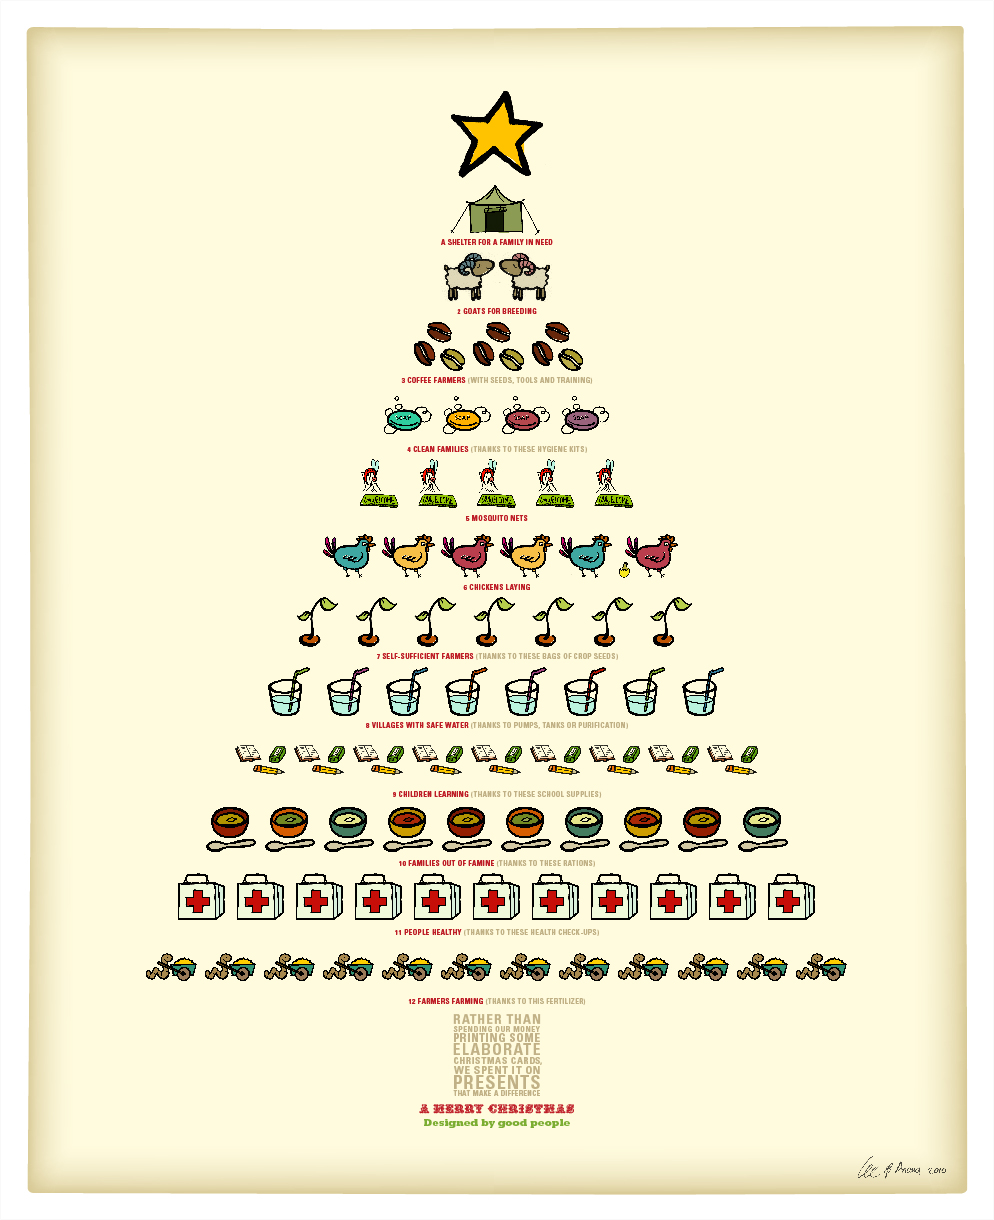 MERRY CHRISTMAS, Designed By Good People 2010